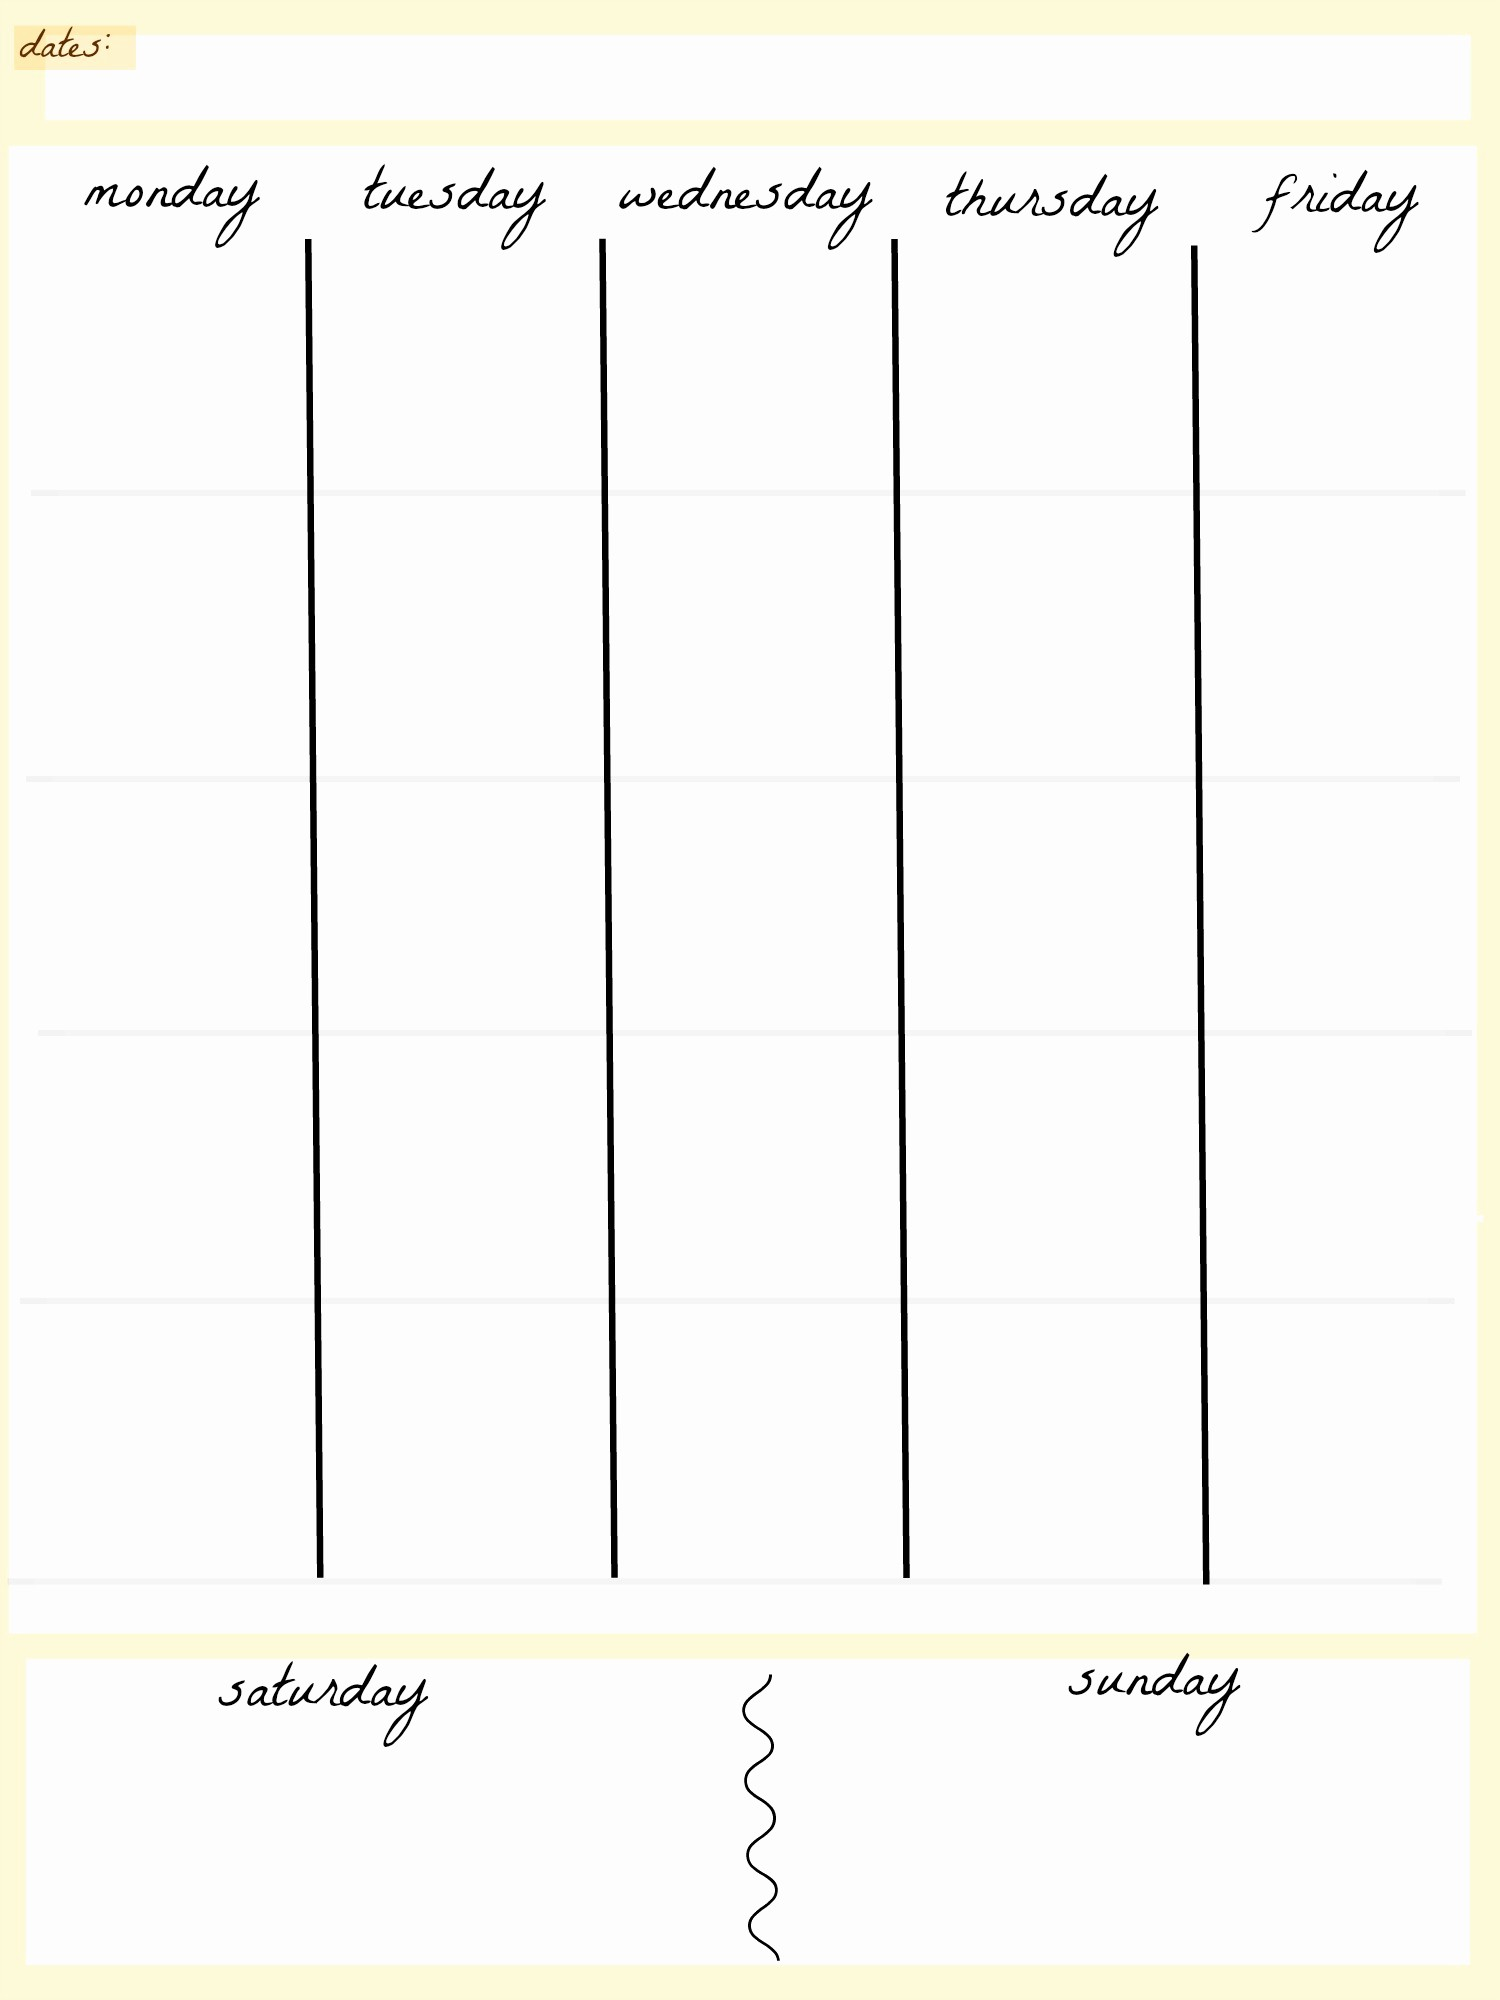 5 Day Weekly Calendar Template New Blank 5 Day Calendar Printable